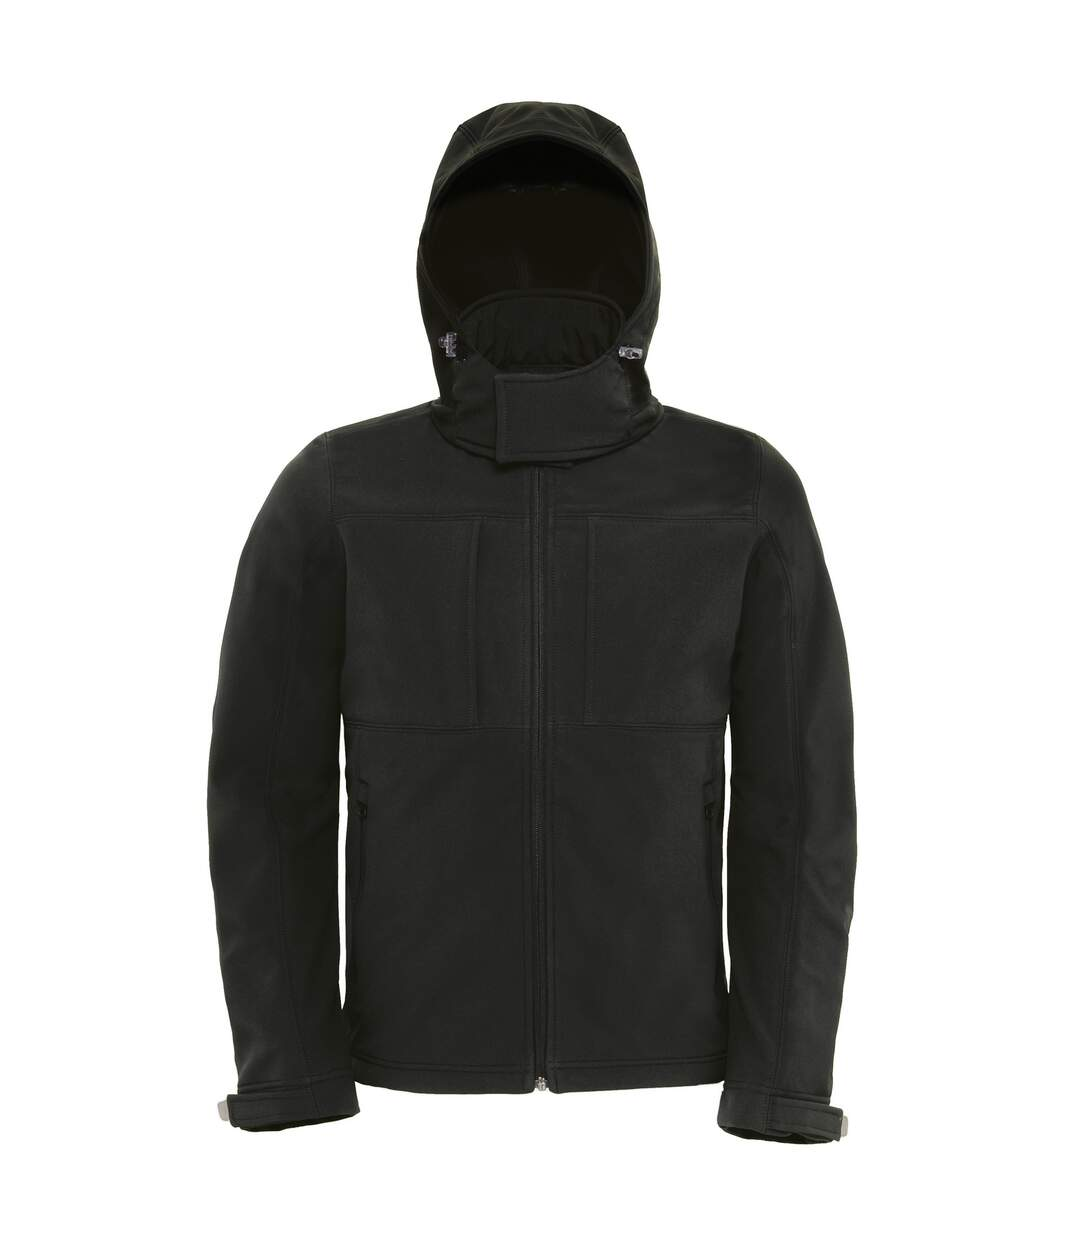 B&C Mens Hooded Softshell Breathable, Waterproof & Windproof Jacket (Fleece Lining) (Black) - UTBC2001